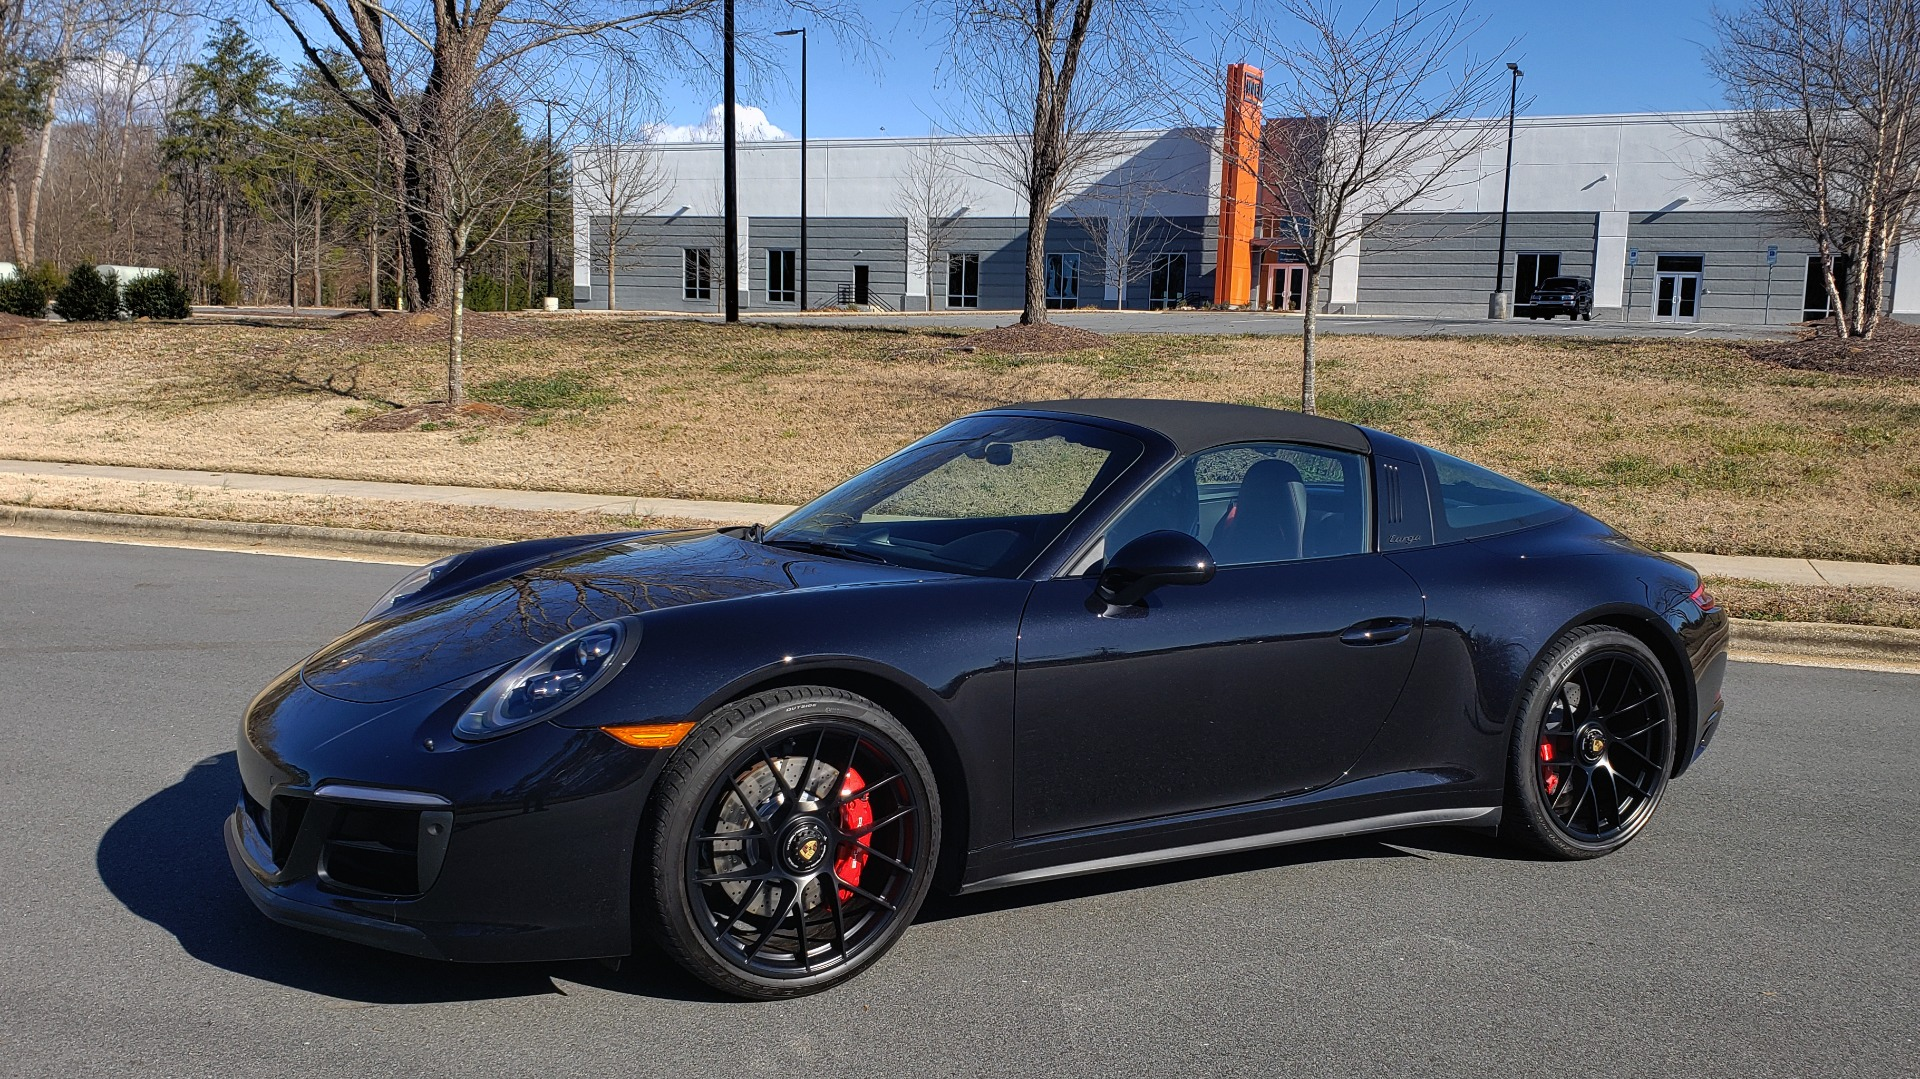 Used 2017 Porsche 911 TARGA 4 GTS / NAV / 7-SPD MANUAL / BURMESTER / REARVIEW for sale Sold at Formula Imports in Charlotte NC 28227 9